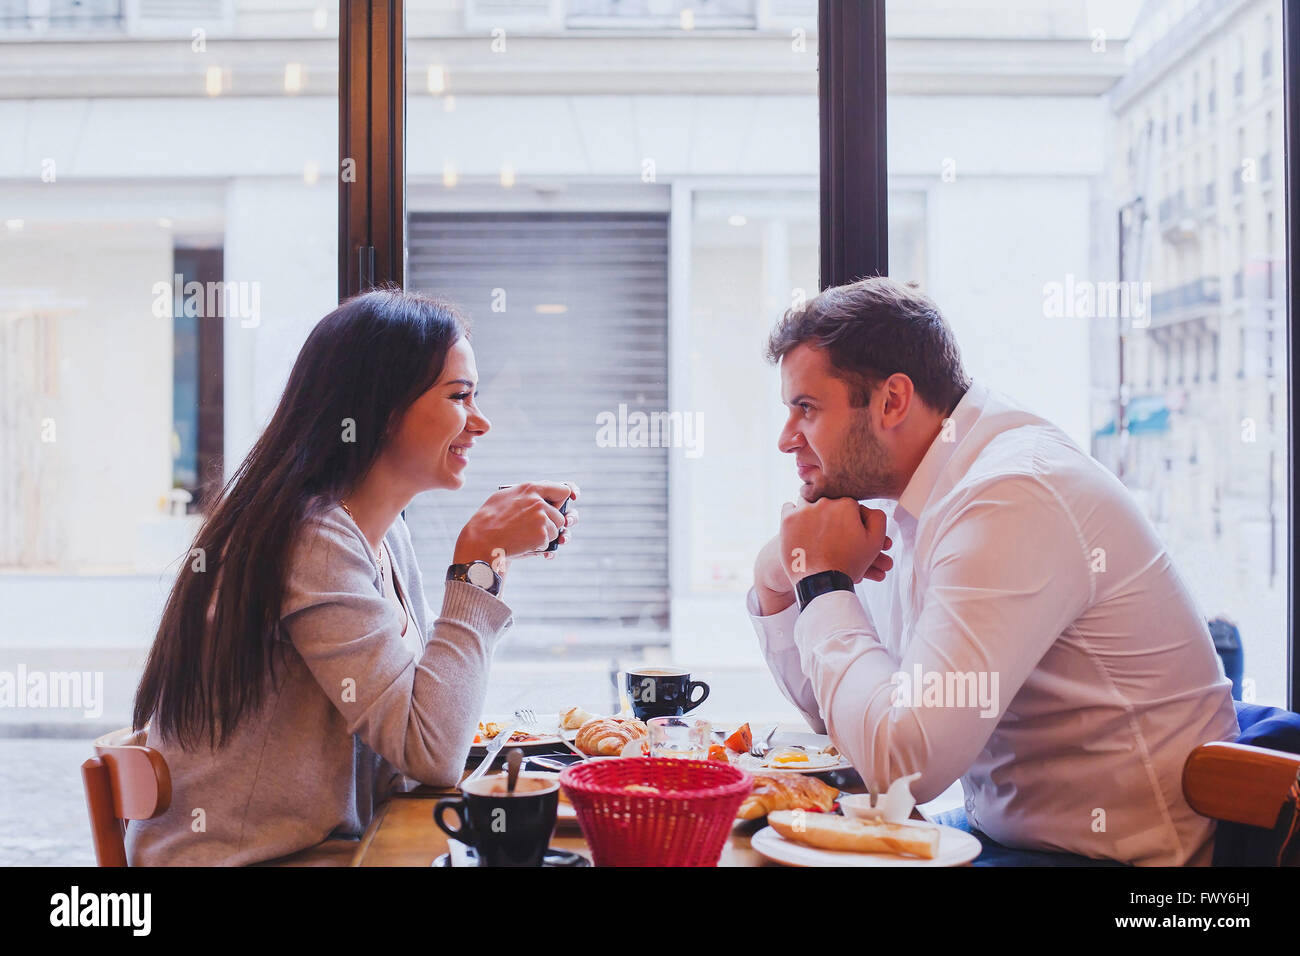 eating in restaurant, happy smiling couple having lunch in cafe, dating - Stock Image